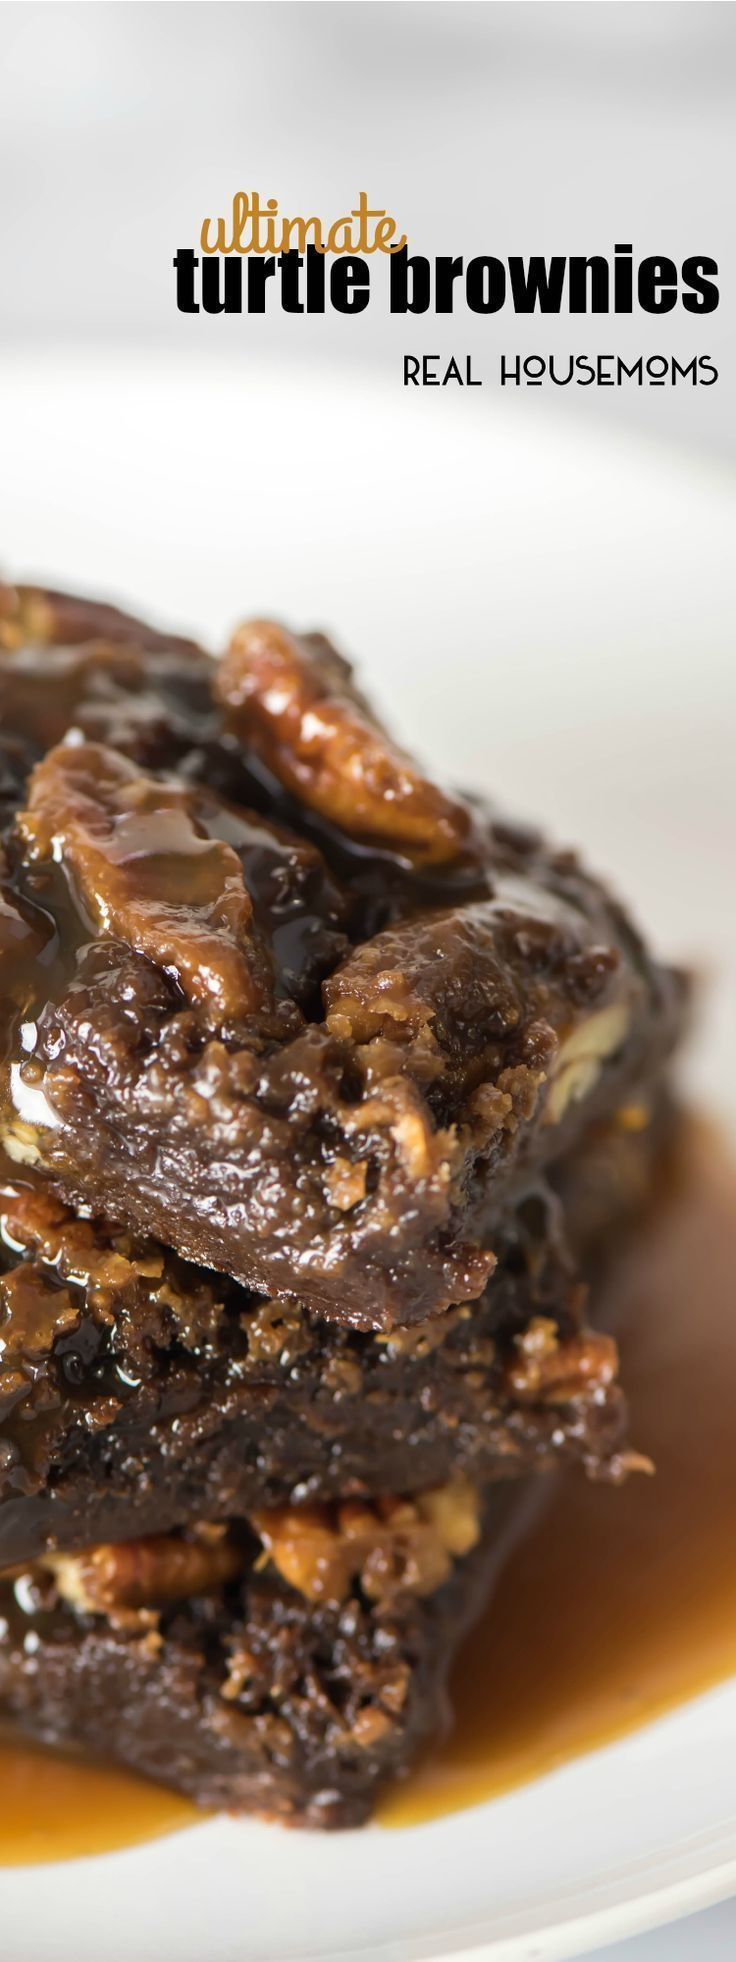 Ultimate Turtle Brownies fudgy brownies with 2 kinds of caramel sauce and pecans! This is the ultimate and it's such an easy dessert recipe! #turtlebrownies Ultimate Turtle Brownies fudgy brownies with 2 kinds of caramel sauce and pecans! This is the ultimate and it's such an easy dessert recipe! #turtlebrownies Ultimate Turtle Brownies fudgy brownies with 2 kinds of caramel sauce and pecans! This is the ultimate and it's such an easy dessert recipe! #turtlebrownies Ultimate Turtle Brownies fudg #turtlebrownies